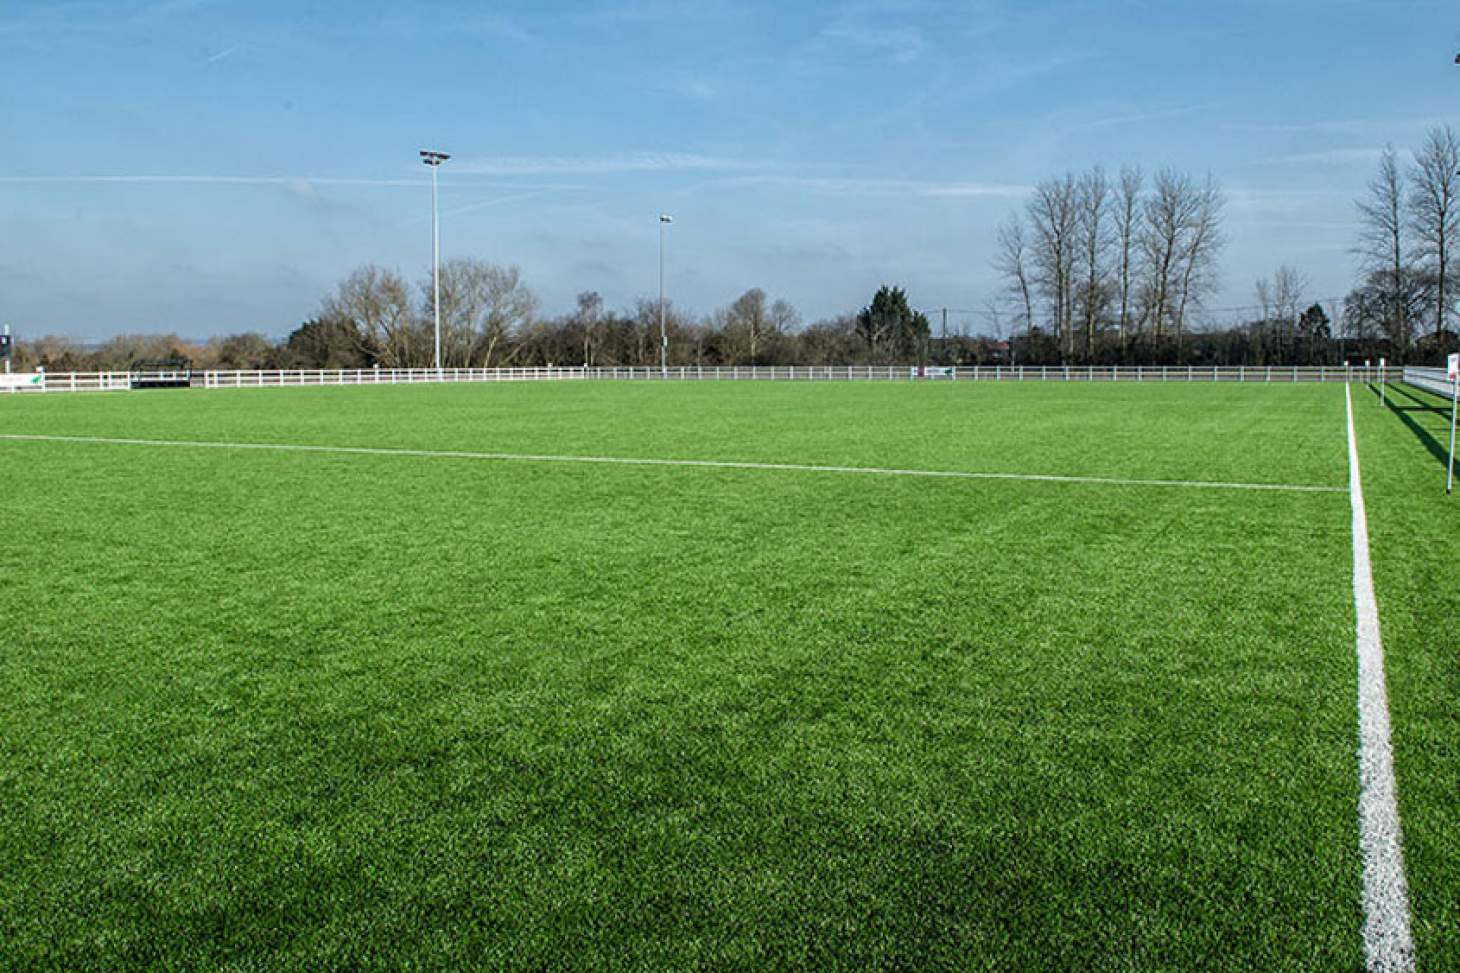 PlayFootball Harpenden 8 a side | 3G Astroturf football pitch